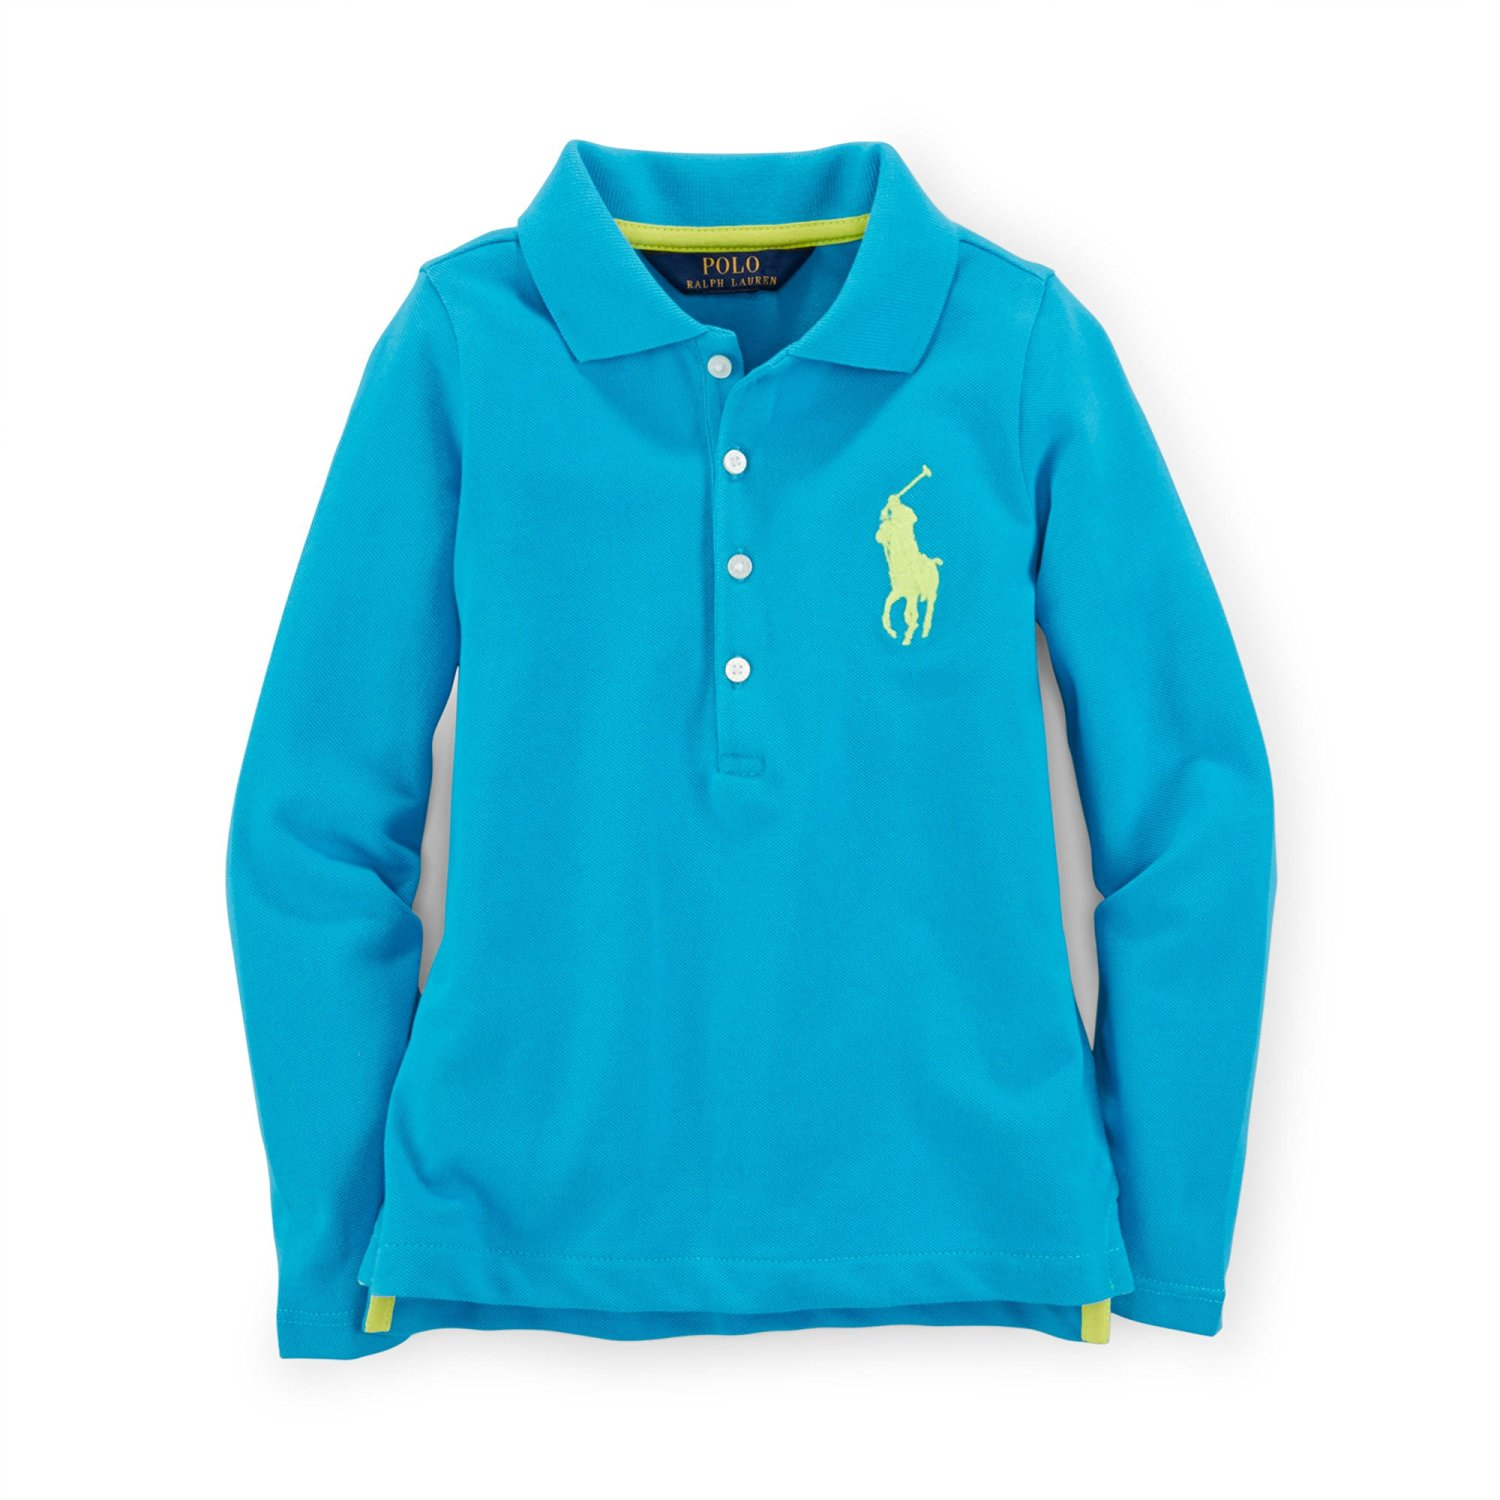 Cheap Stretch Cotton Polo, find Stretch Cotton Polo deals on line at ... 827a7ff3eea